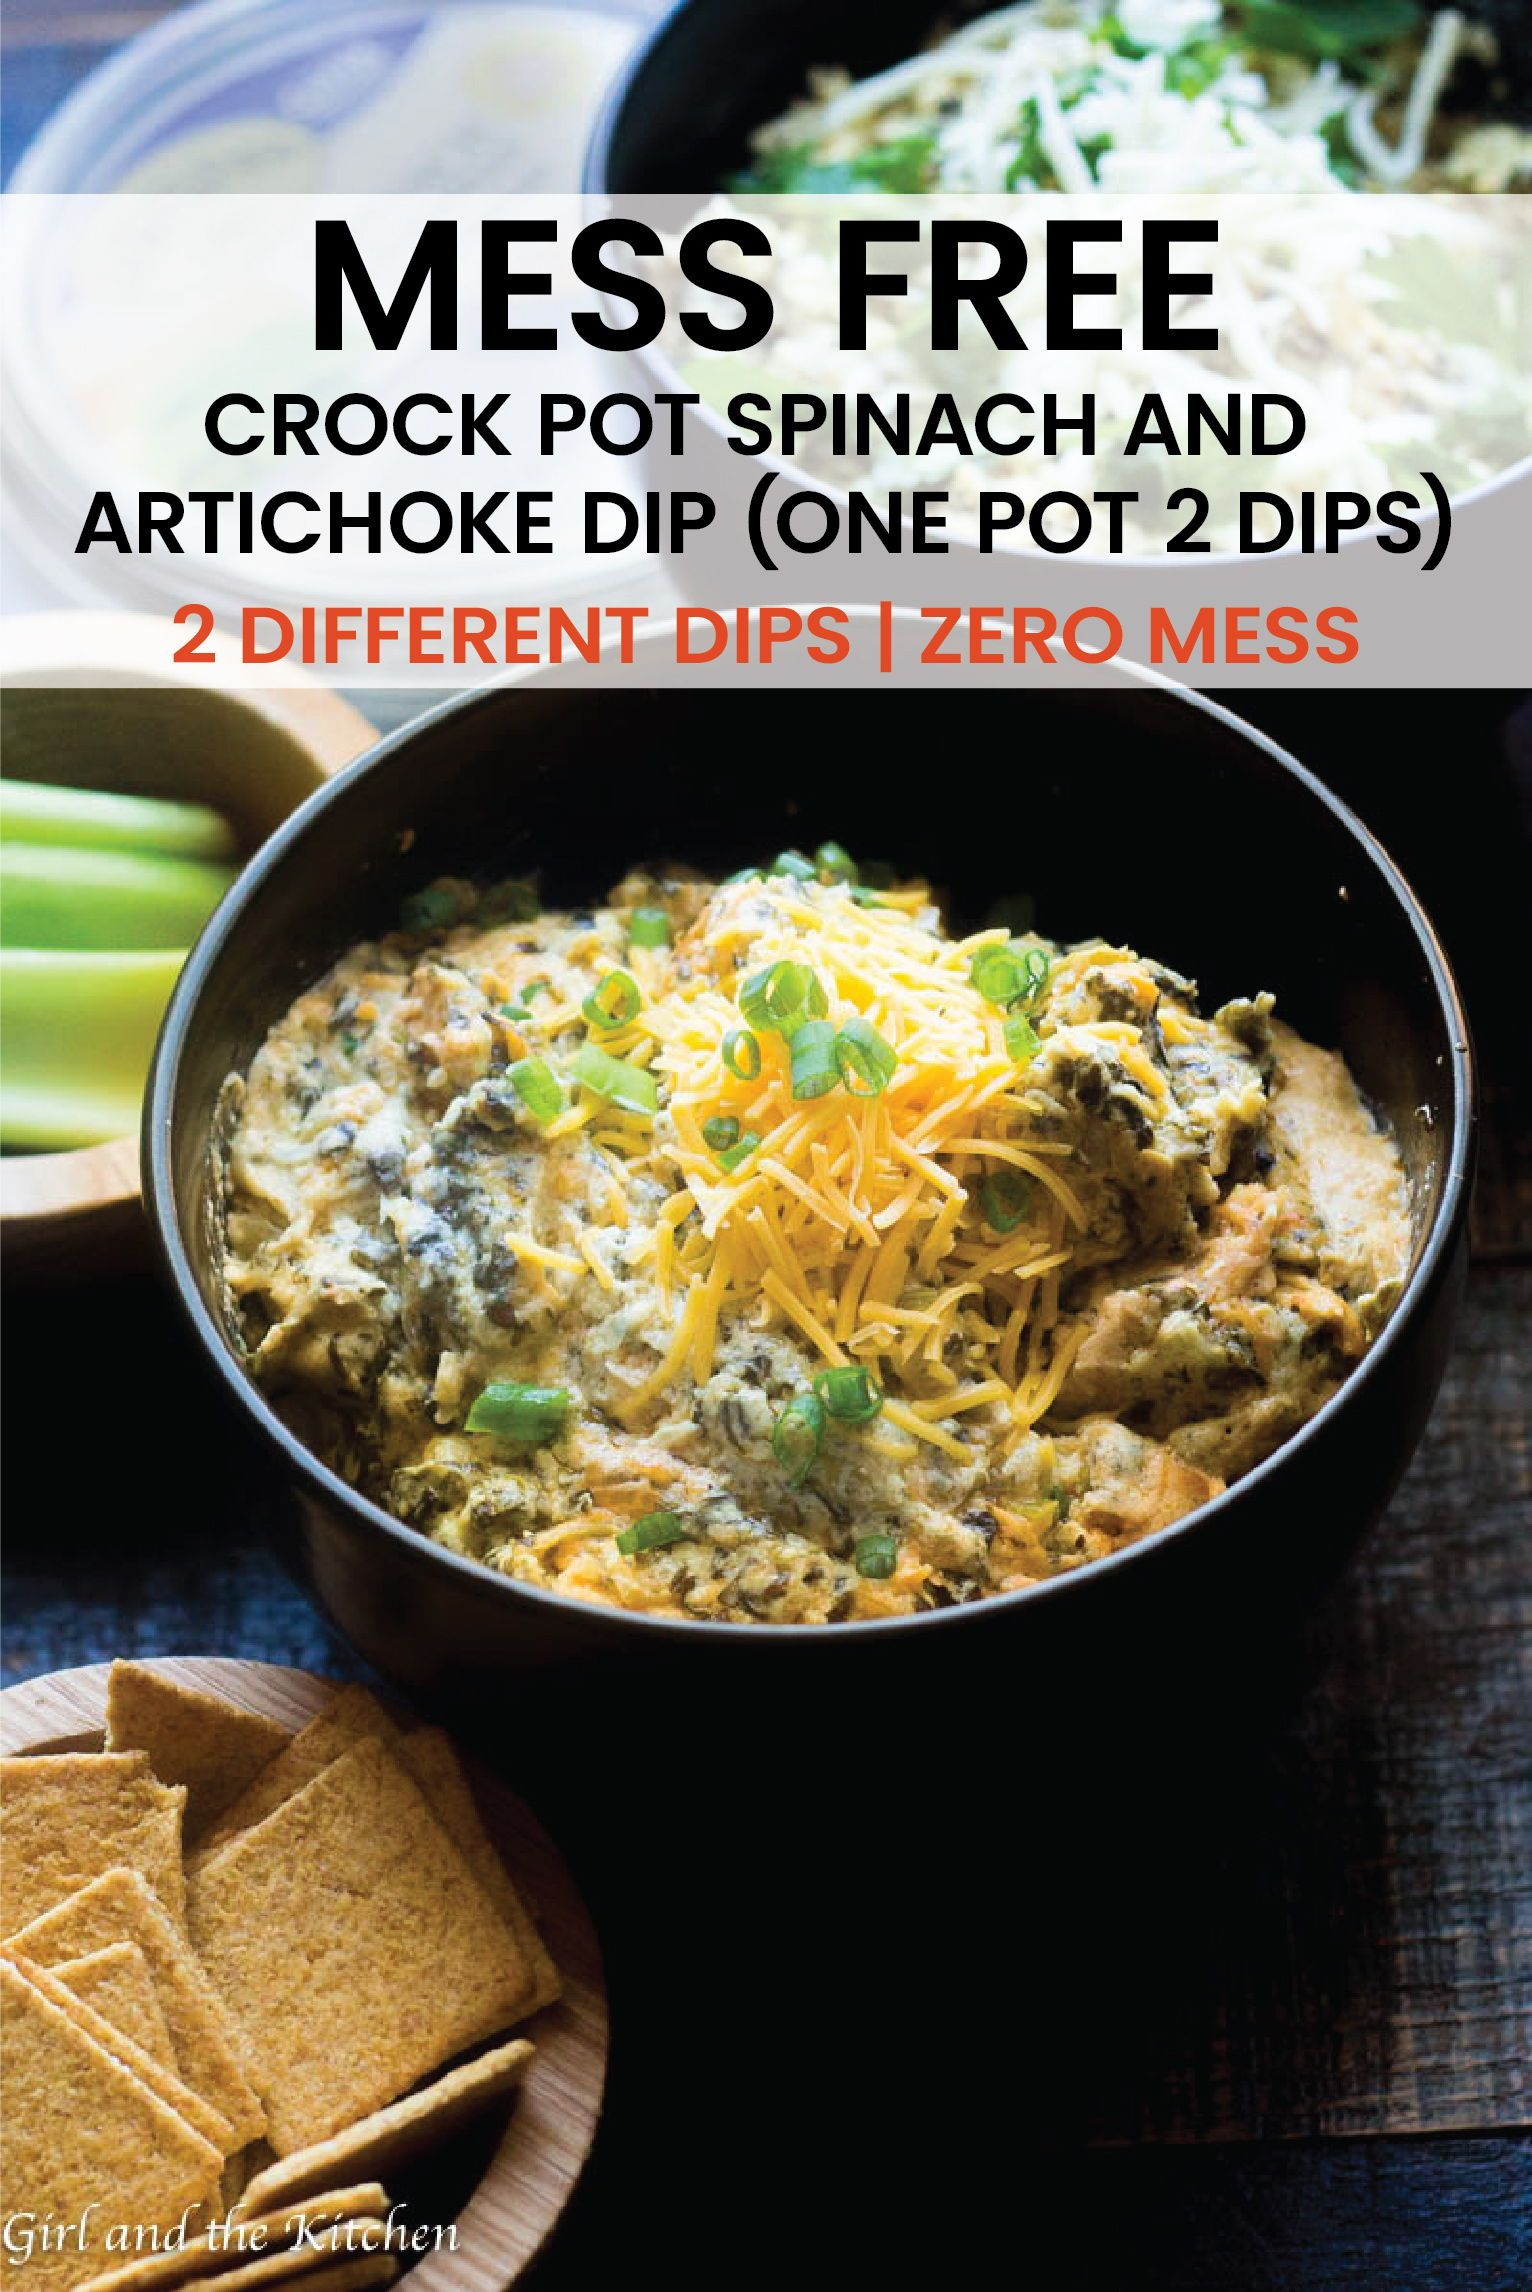 Mess Free Crock Pot Spinach and Artichoke Dip (One Pot 2 Dips) - Girl and the Kitchen This incredib